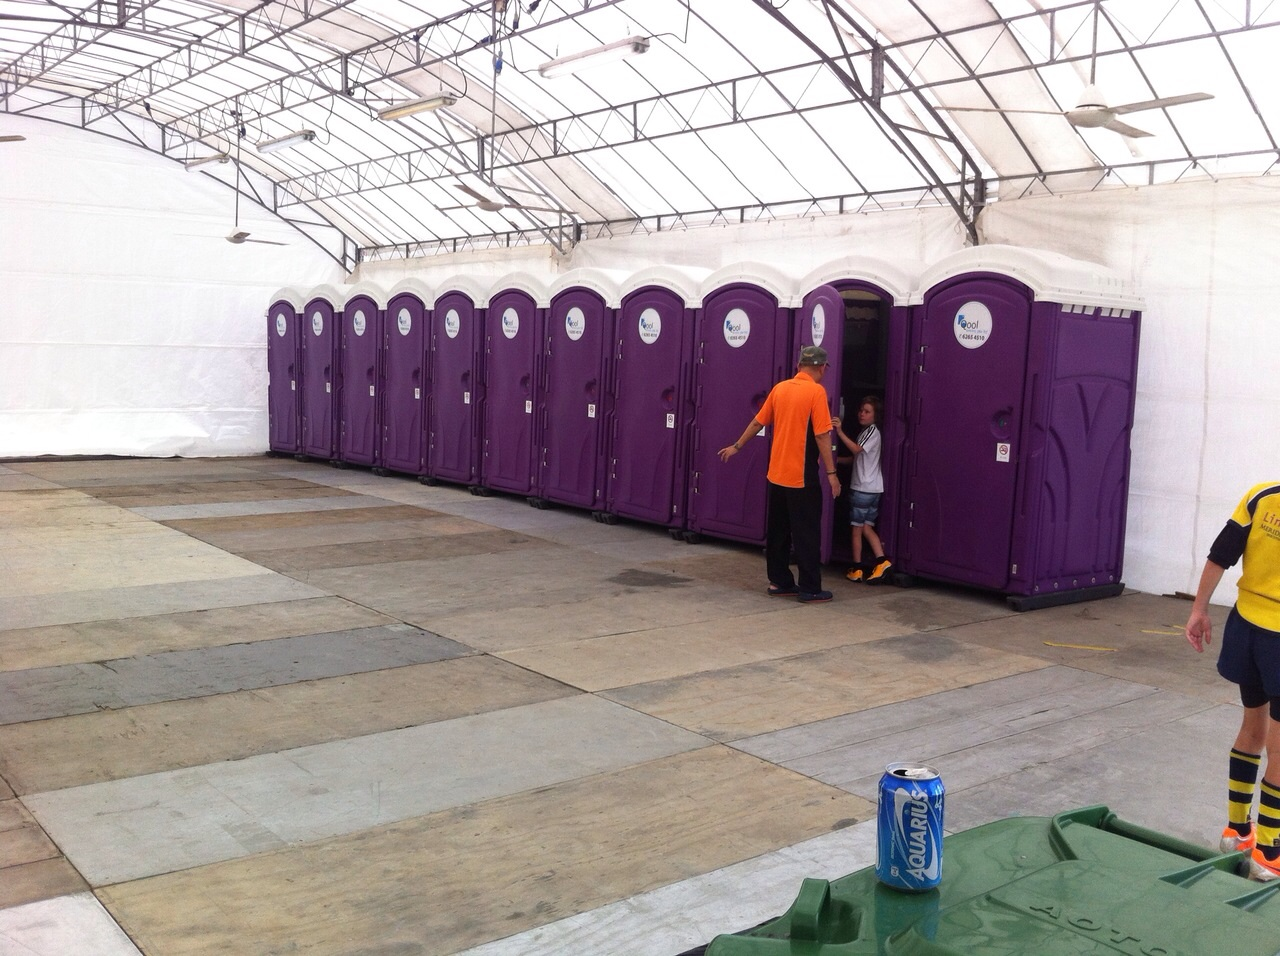 Qool Enviro portable toilet in rugby 7s 6